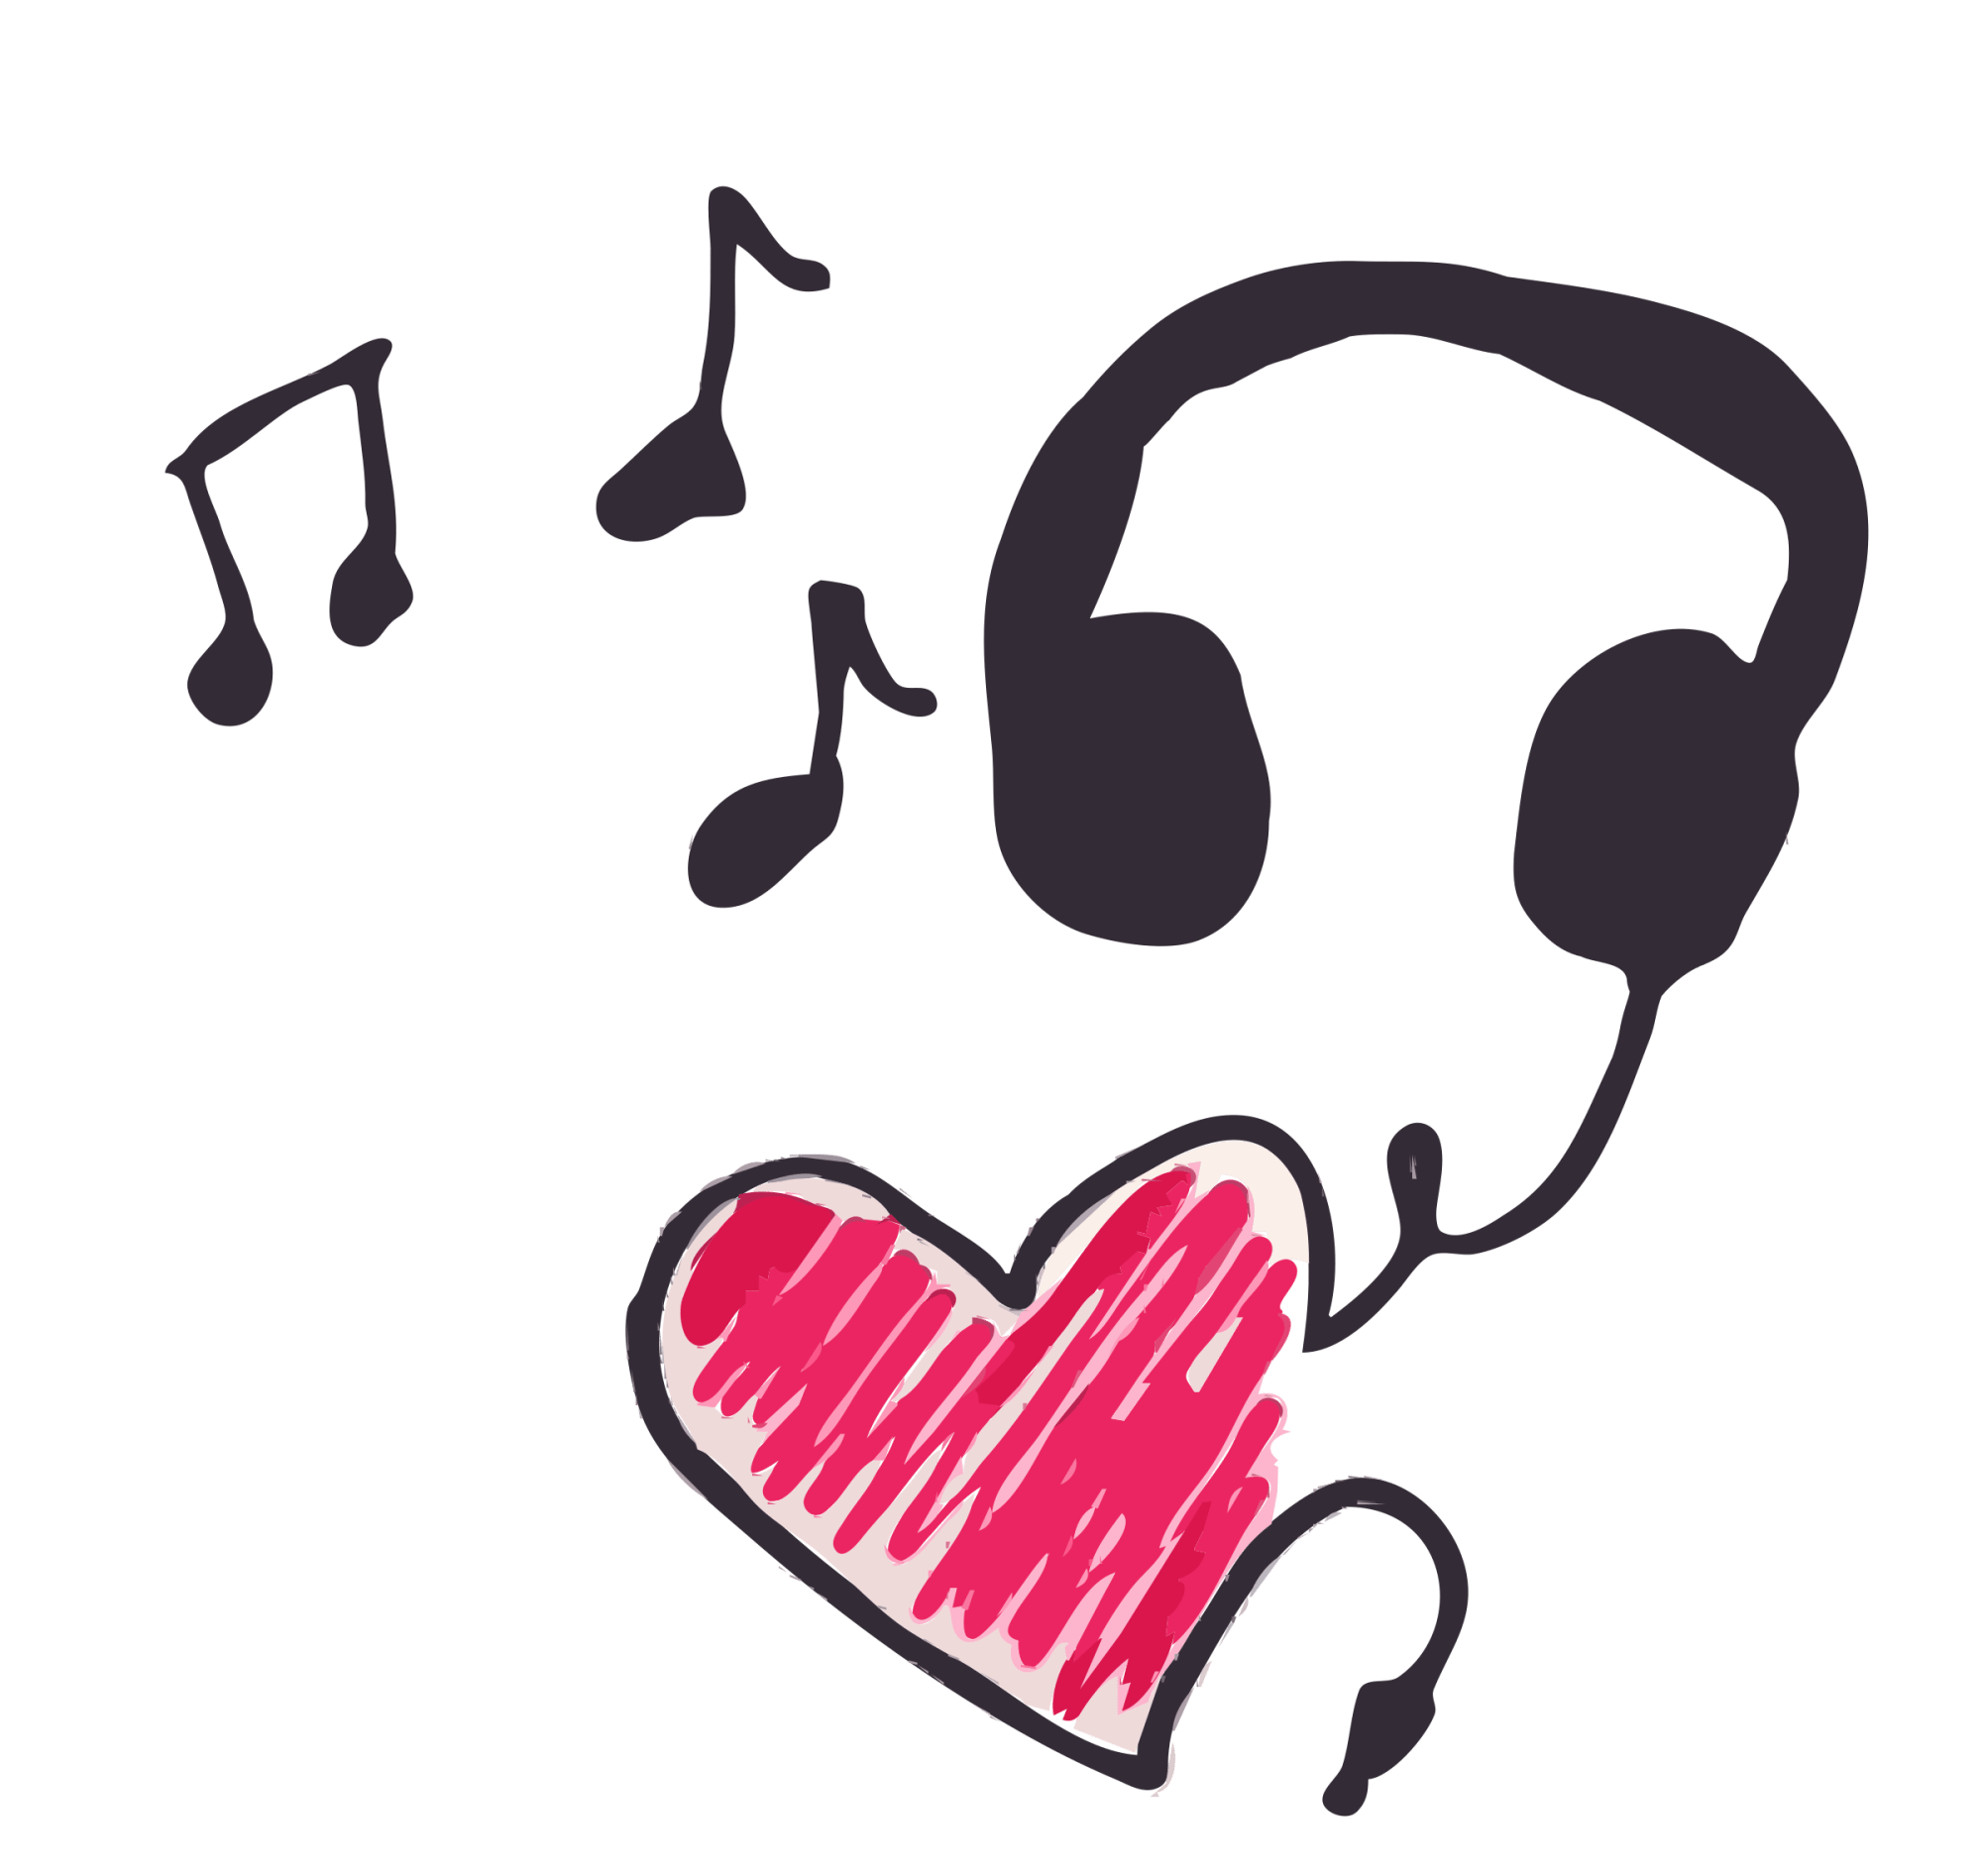 hight resolution of music clipart heart cleaned up big image